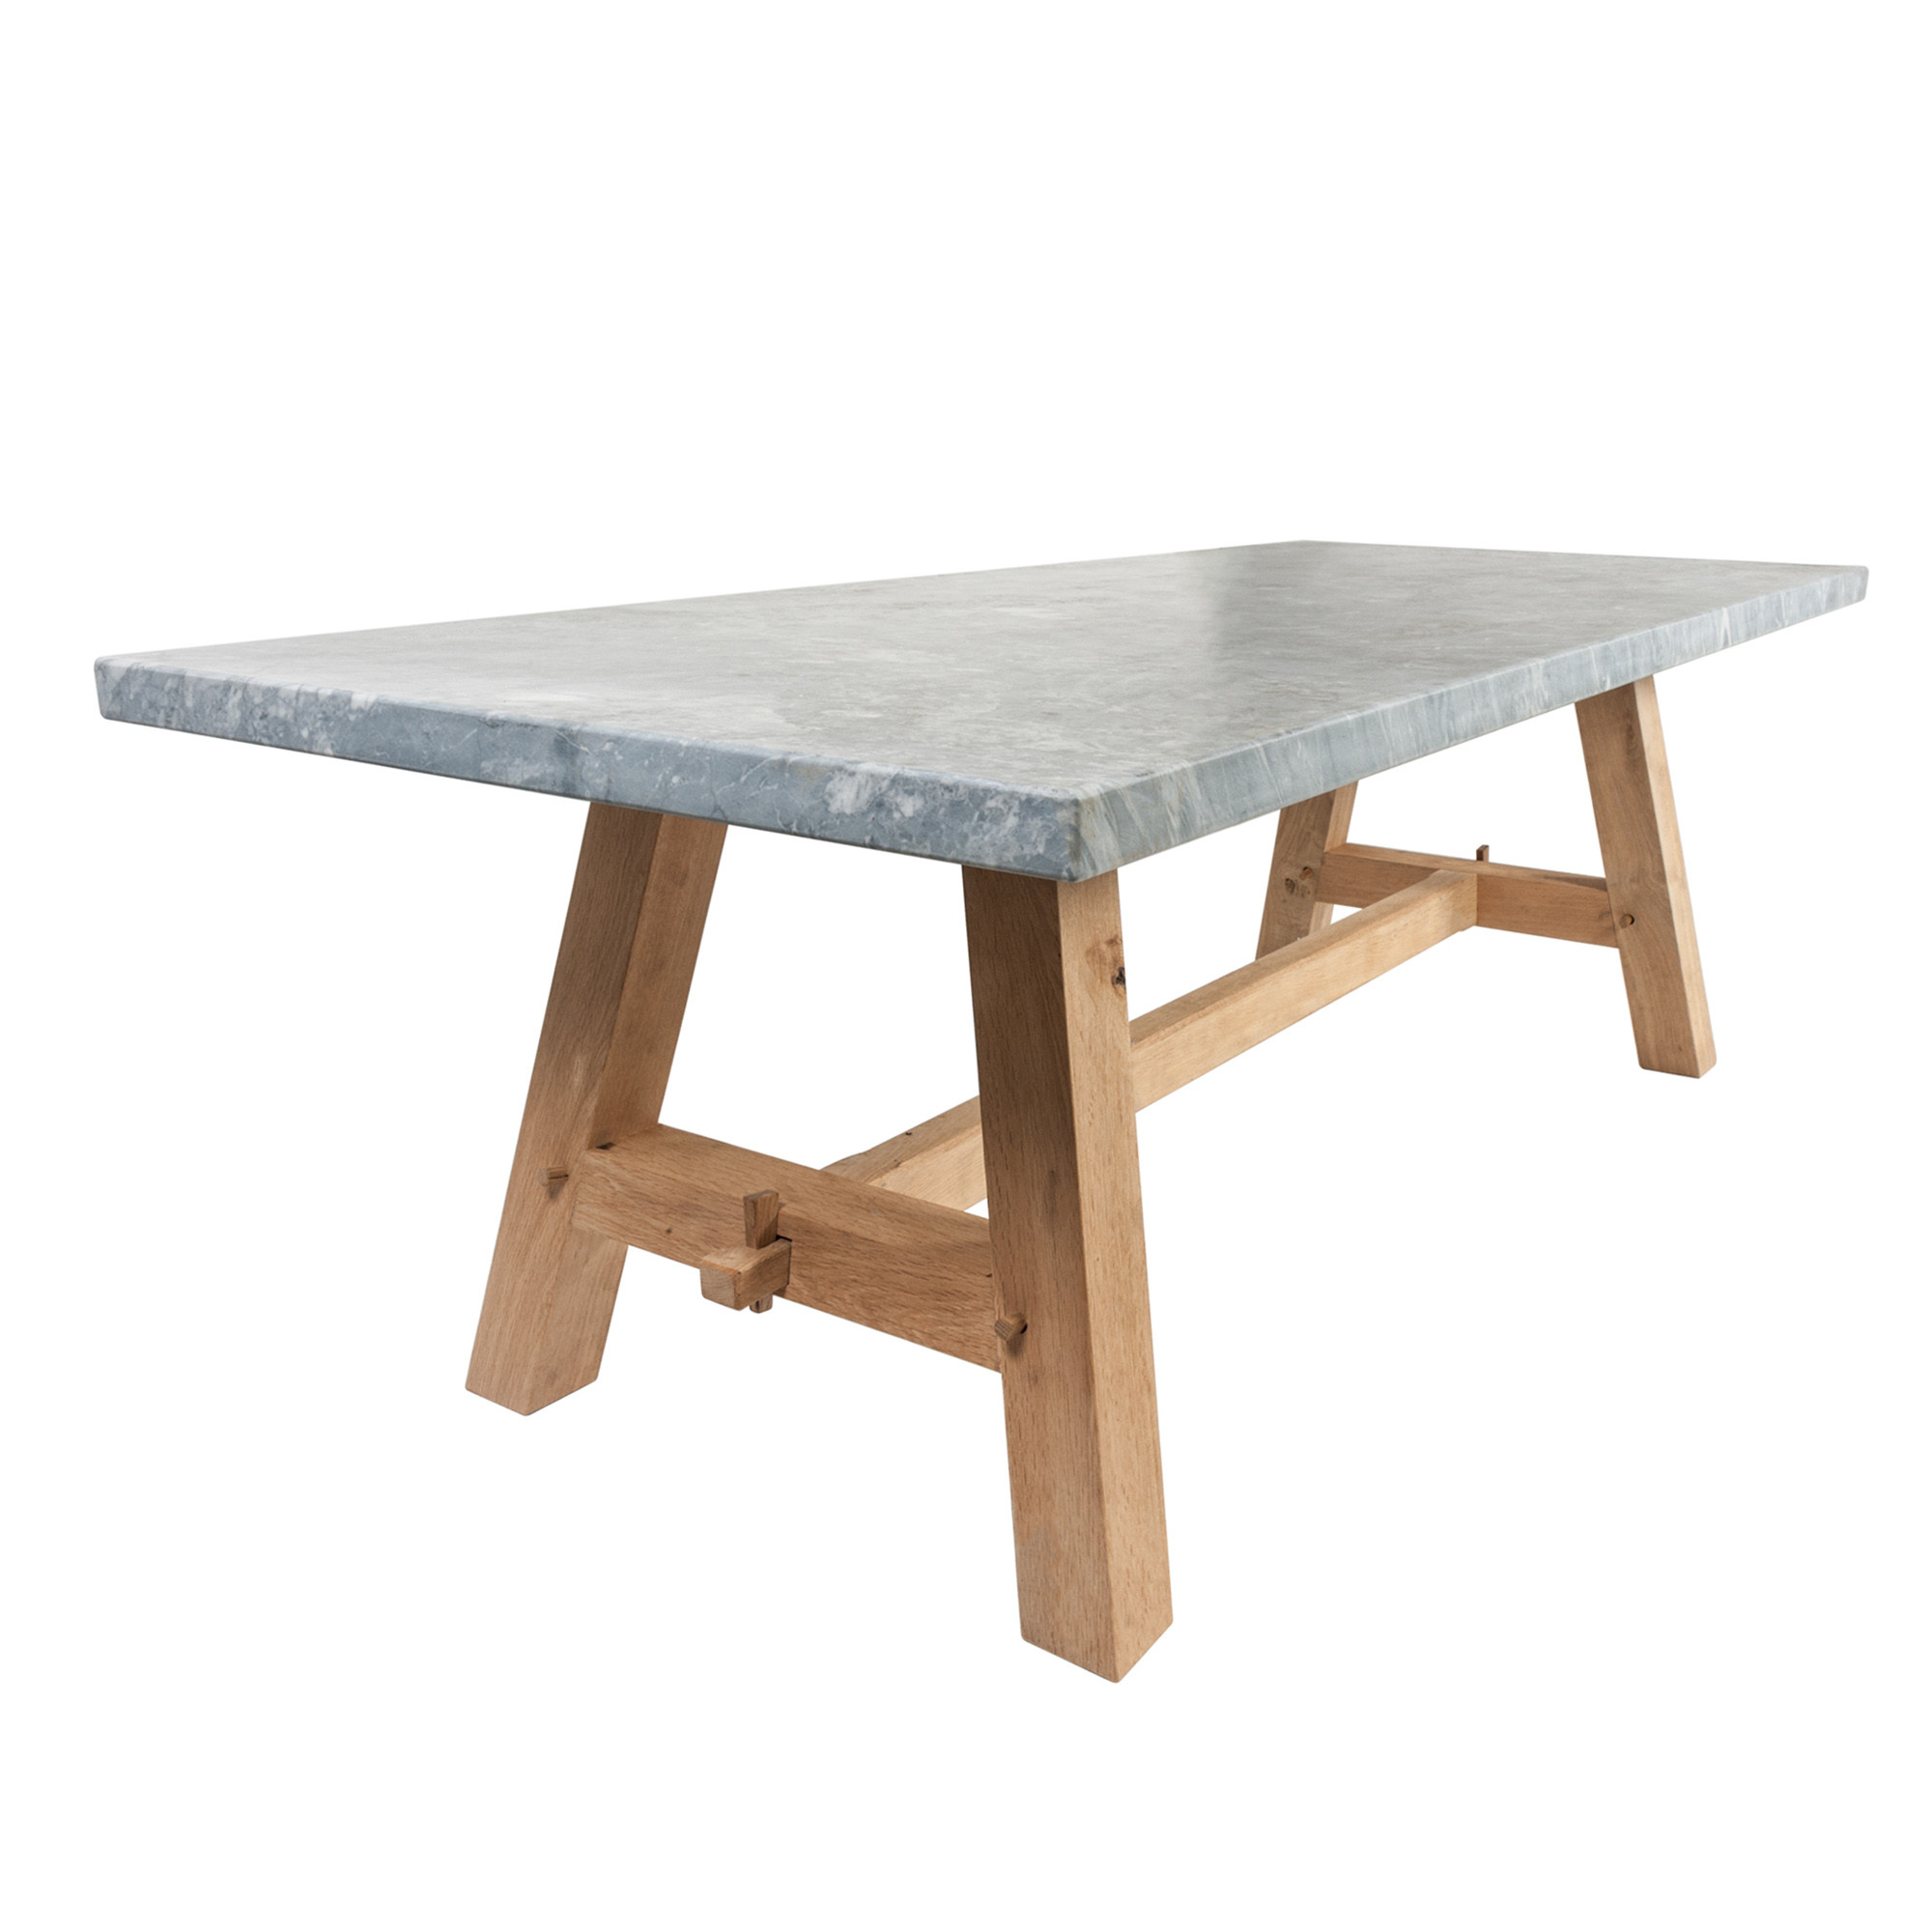 The English Oak Garden Dining Table with Arabesque Marble Top